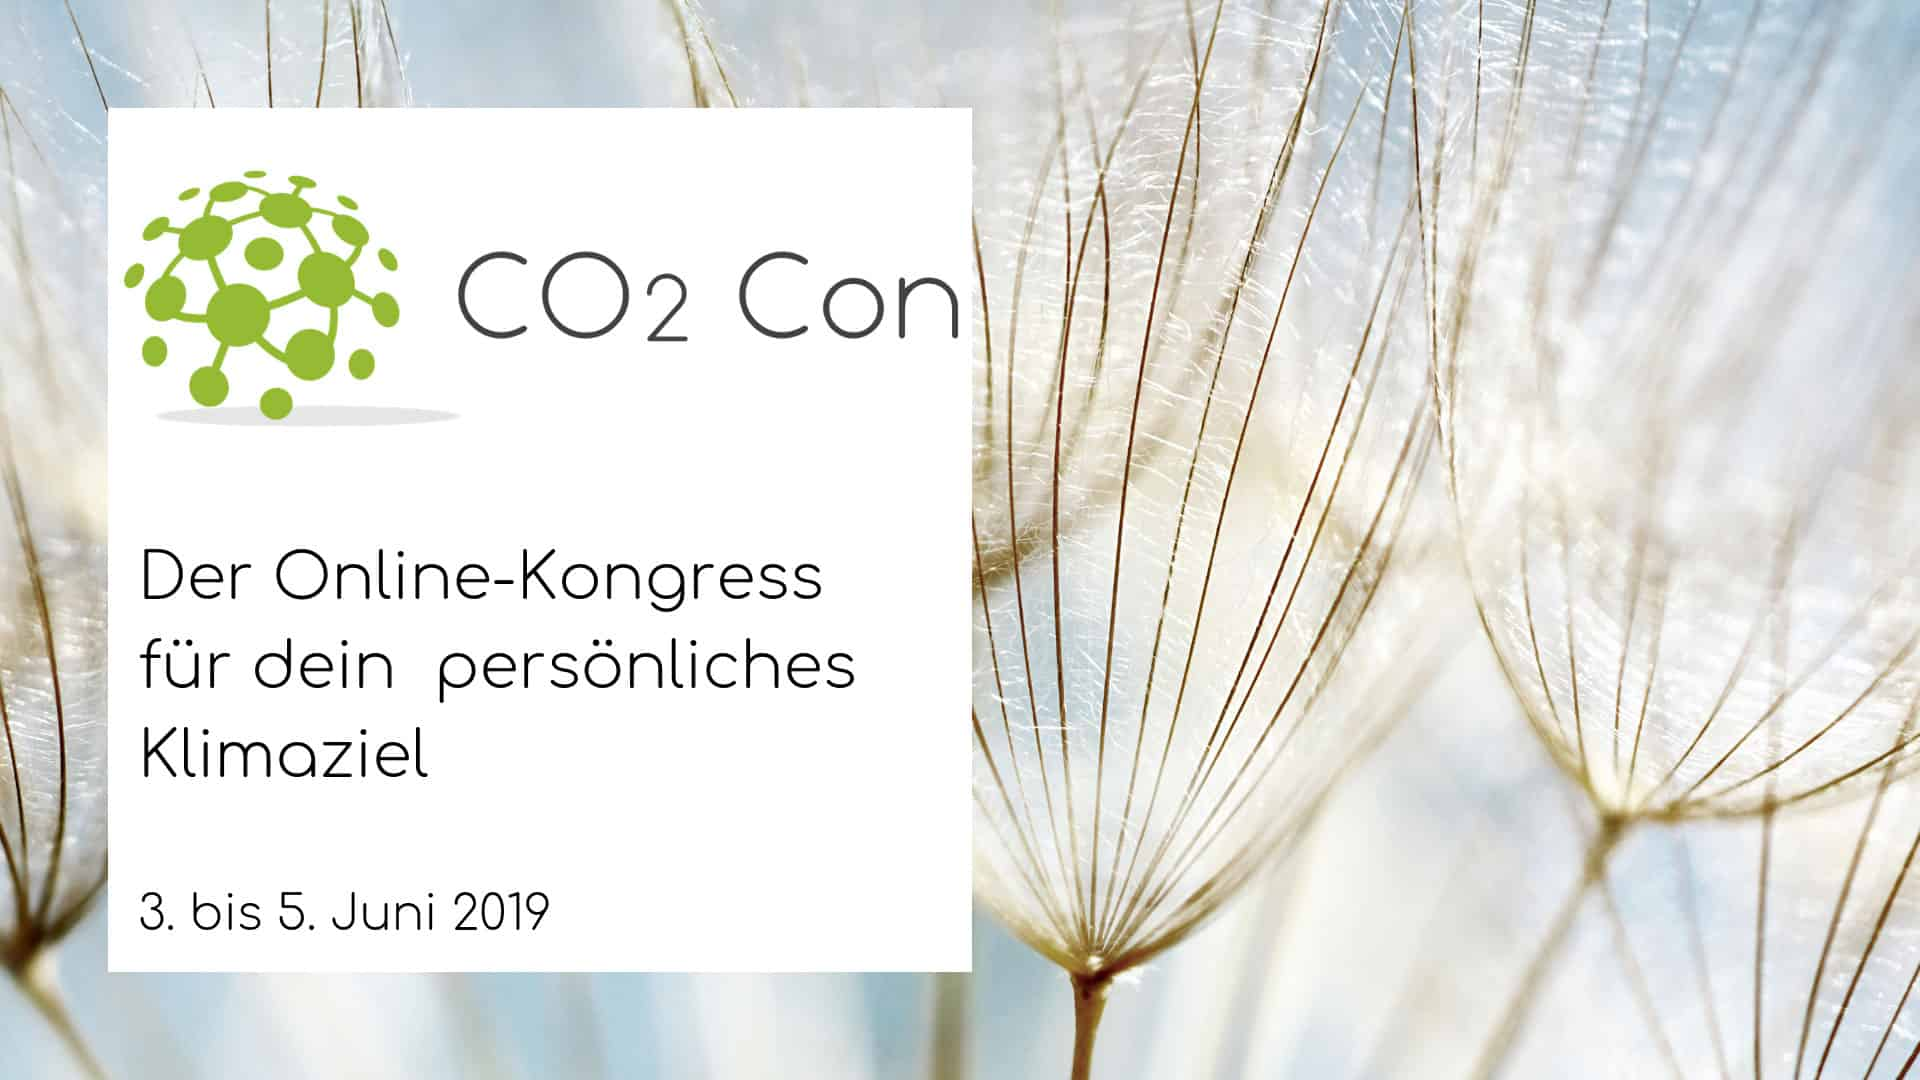 CO2 Con Klima-Onlinekongress